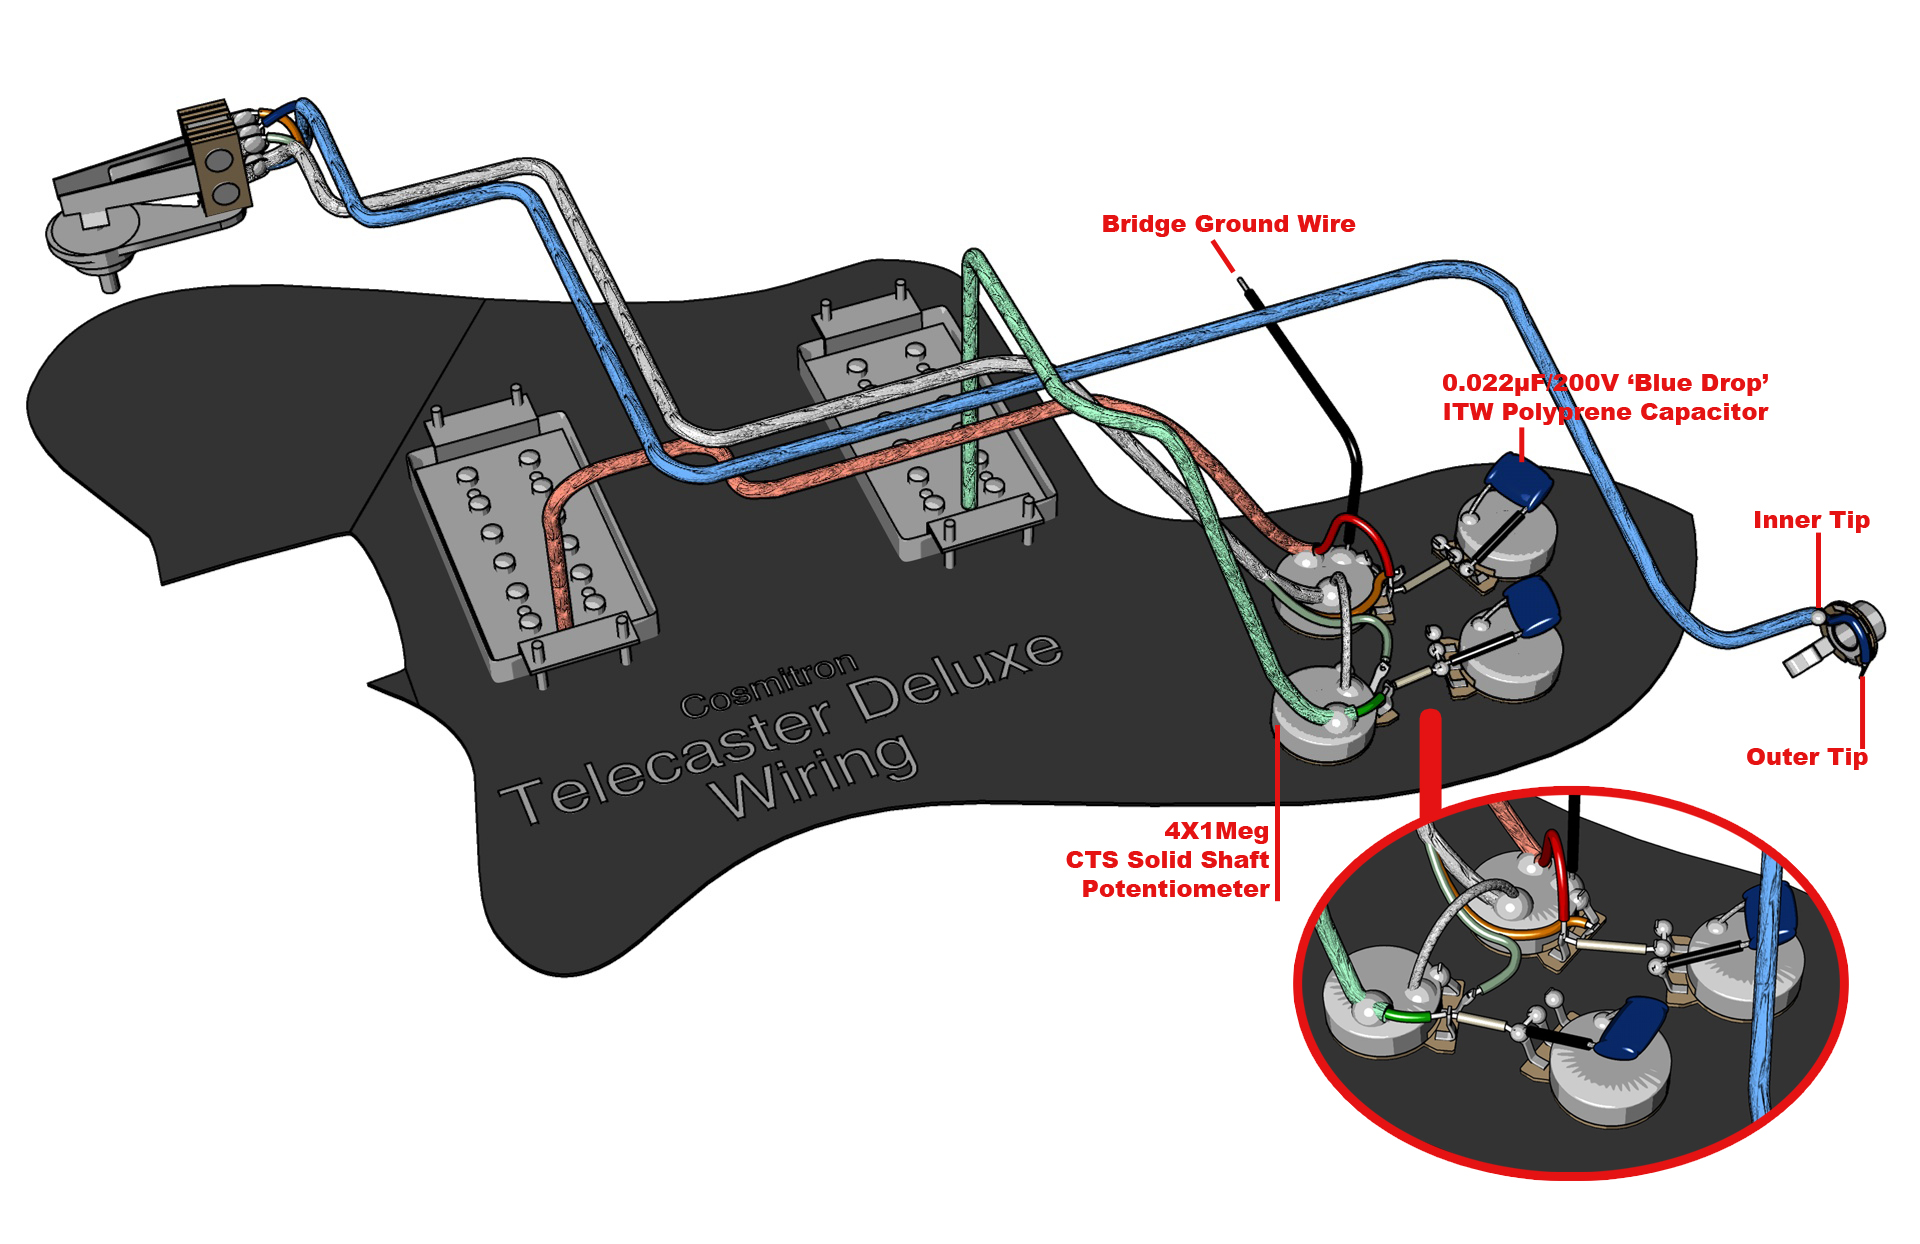 fender tele deluxe wiring diagram wiring diagram and schematic fender stratocaster wiring diagram